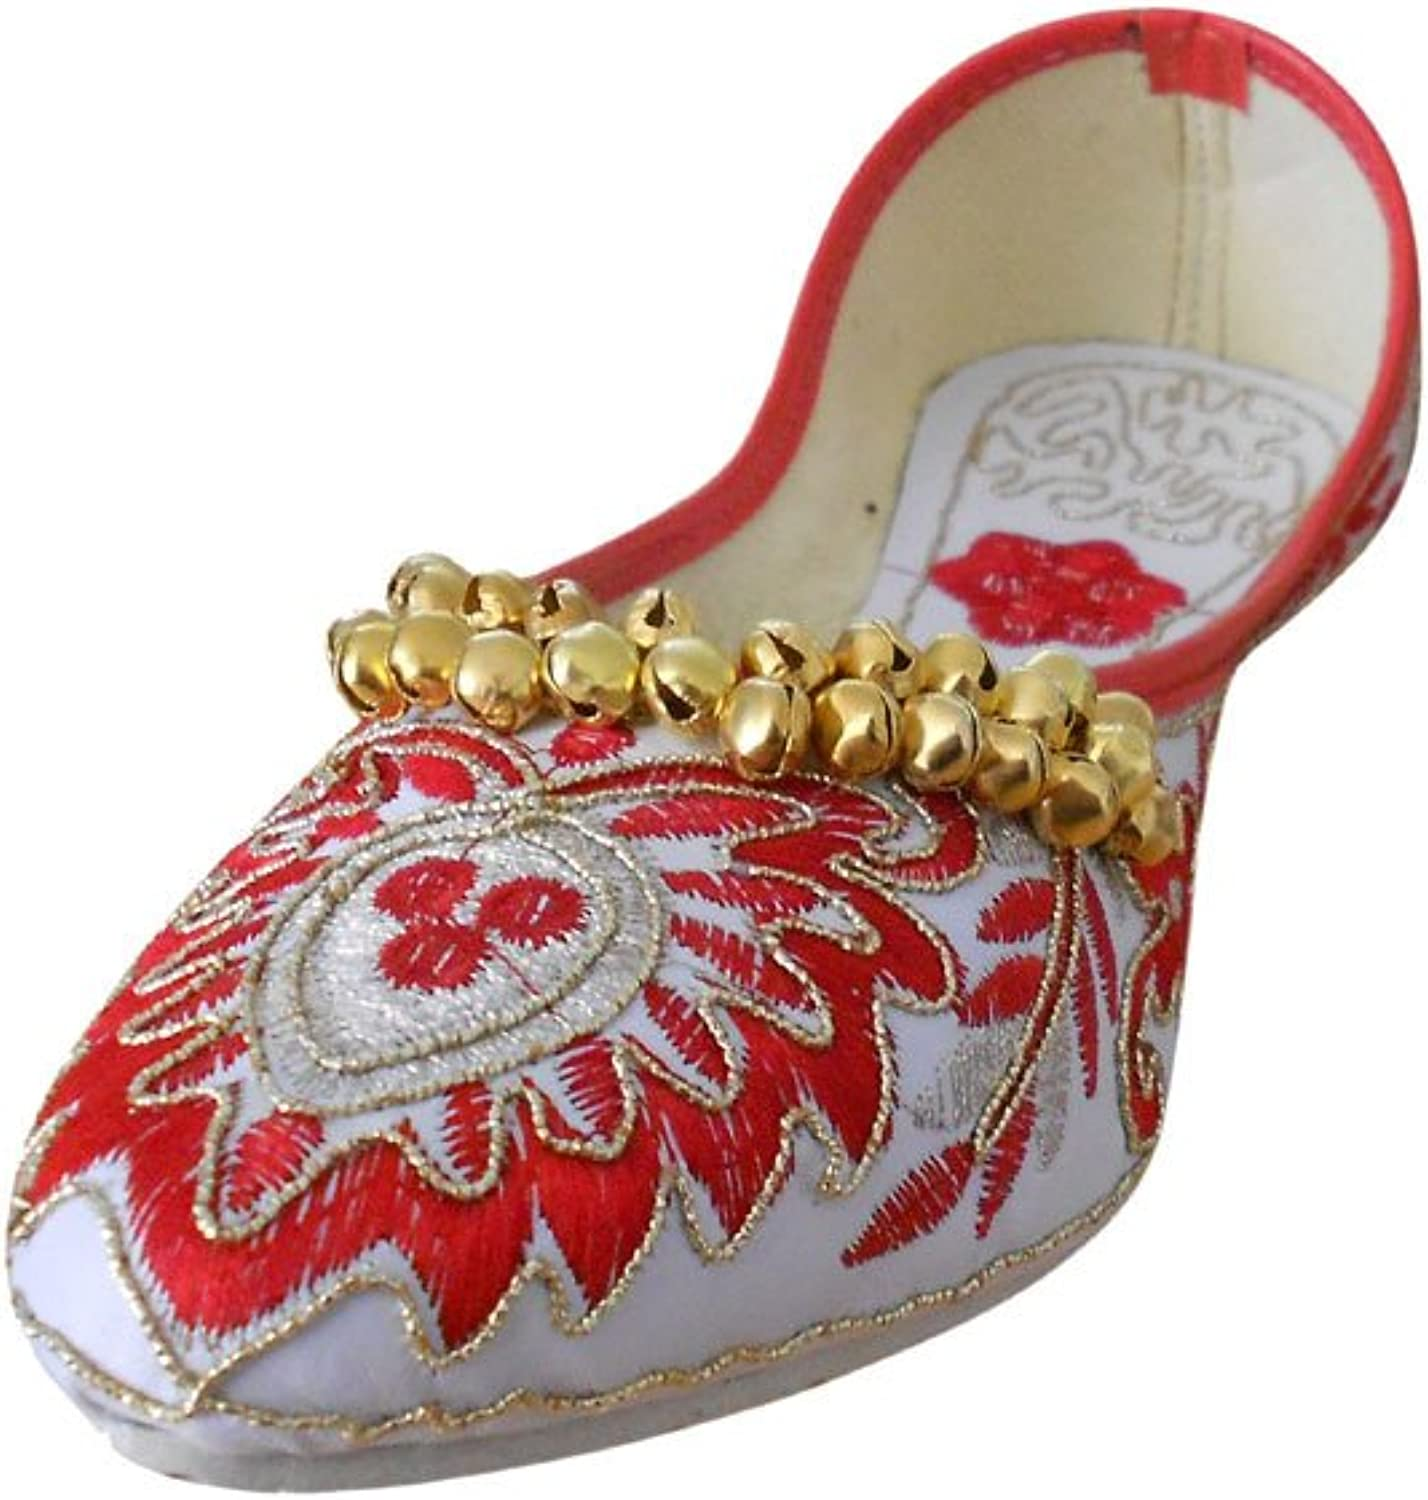 Kalra Creations Women's Traditional Rexine with Embroidery Ethnic shoes